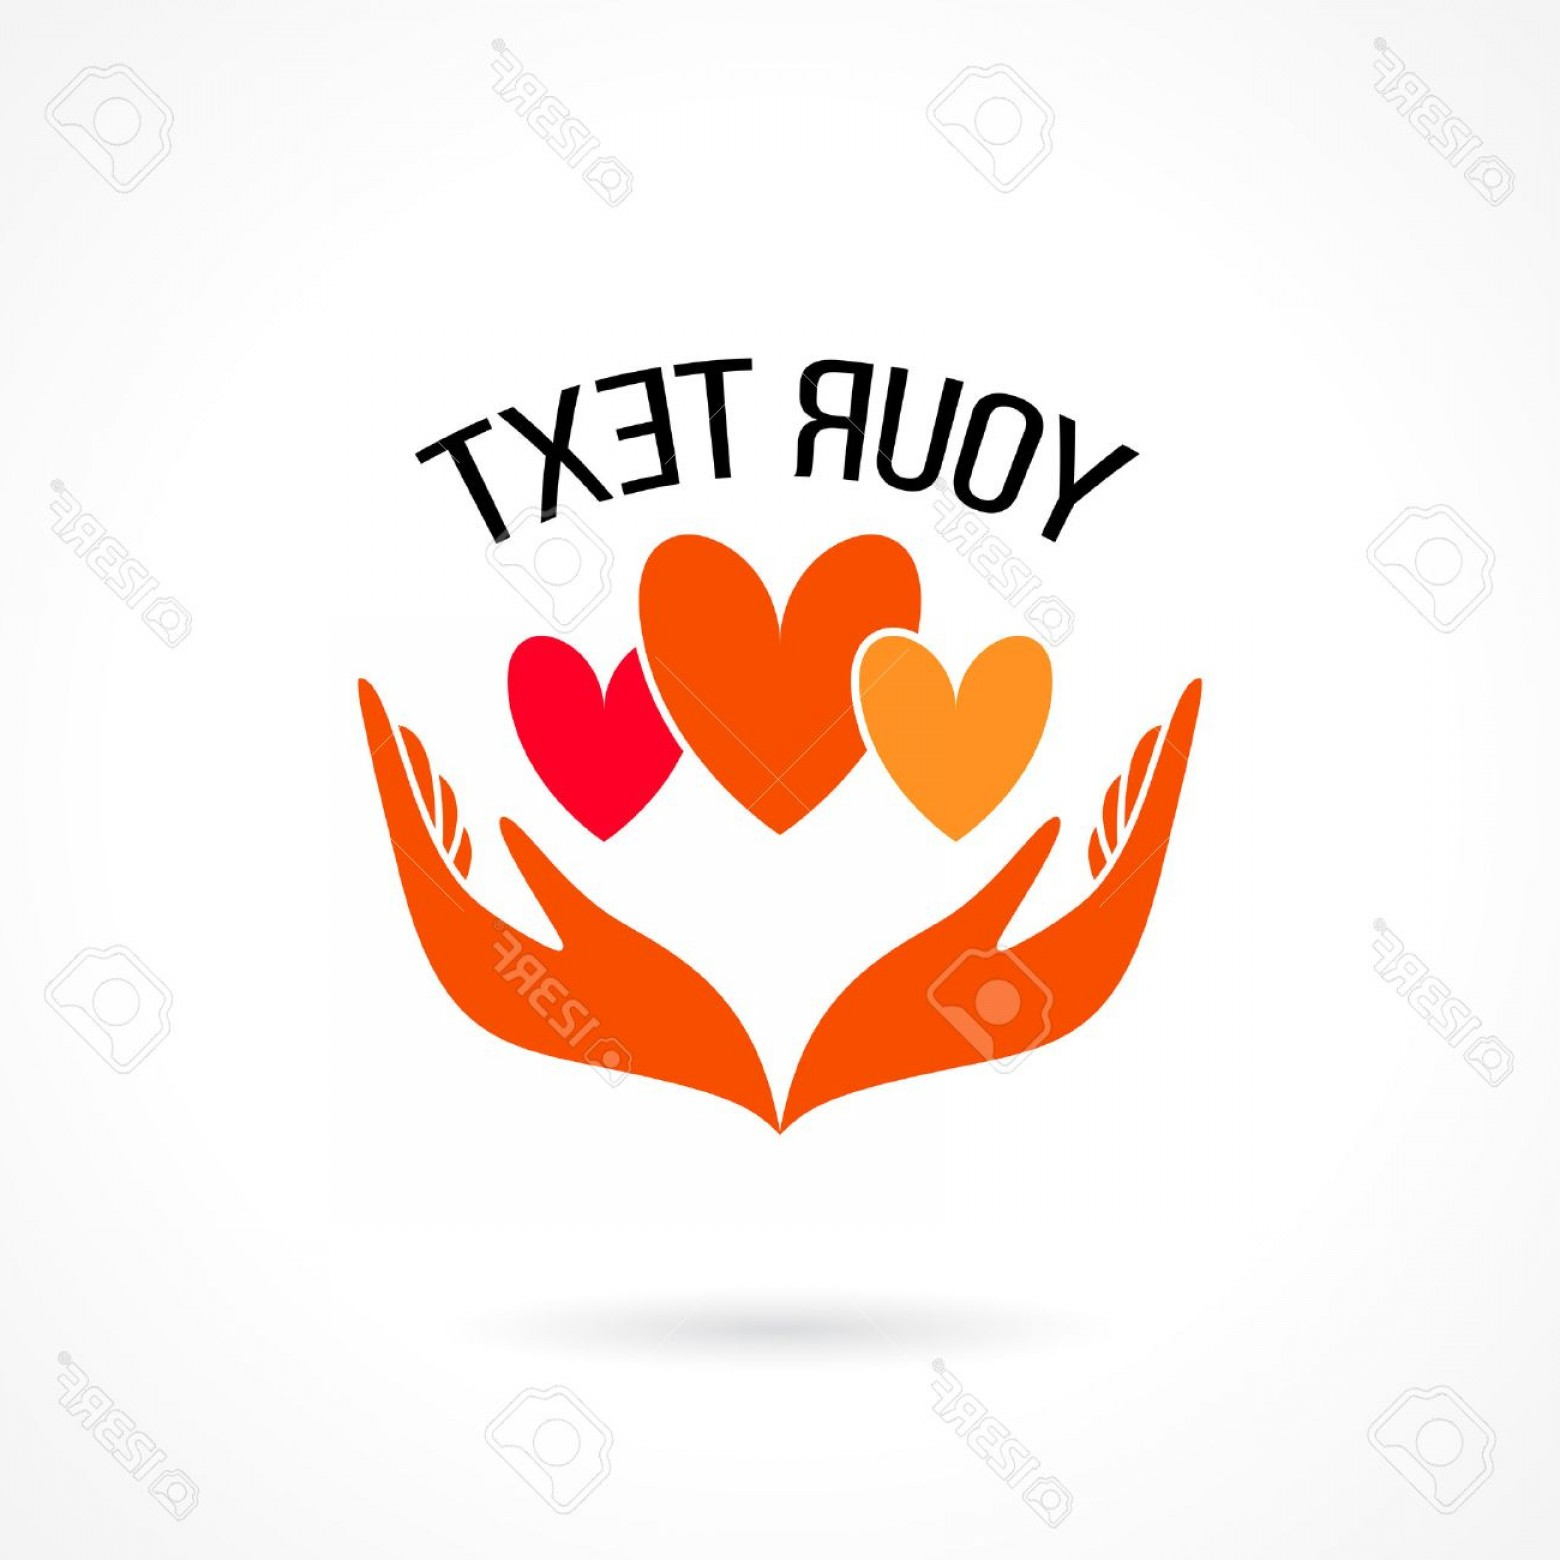 Share Logo Vector: Photostock Vector Vector Logo With Two Hands Holding Hearts Concept Of Love Care Family Safety Insurance Help Share Em